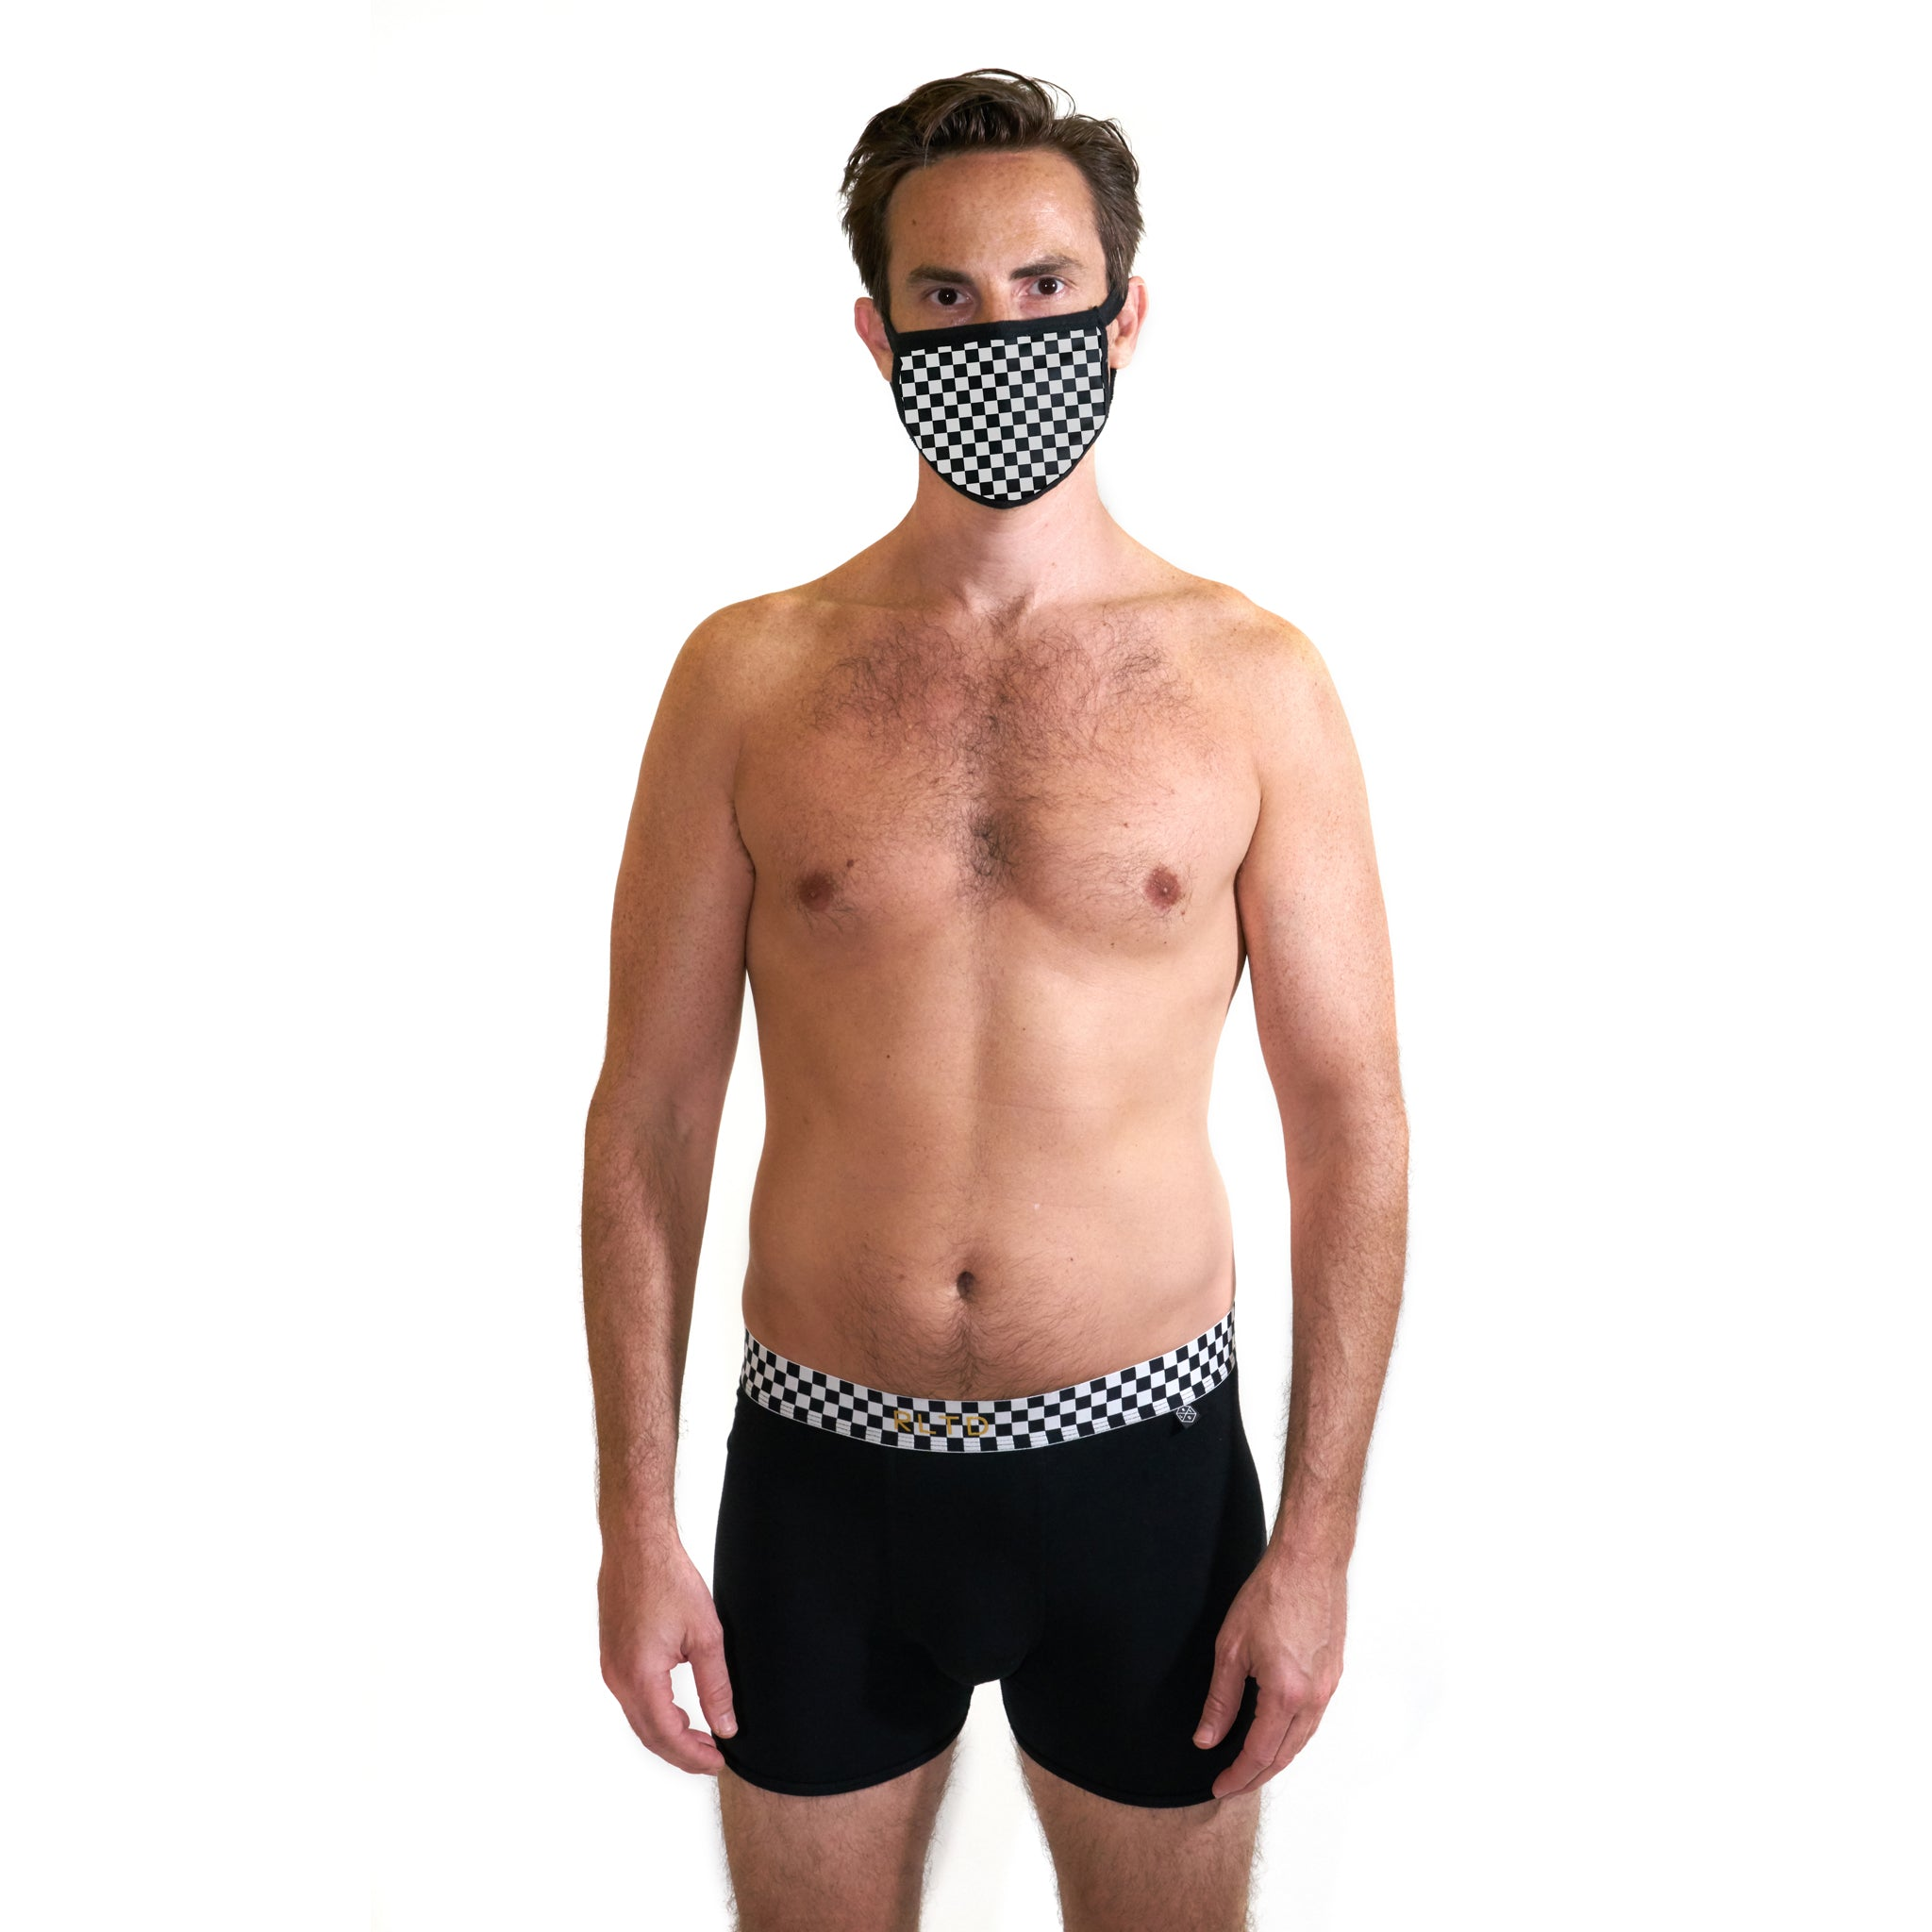 Bandit Face Cover & Underwear/Sock Bundle - Related Garments